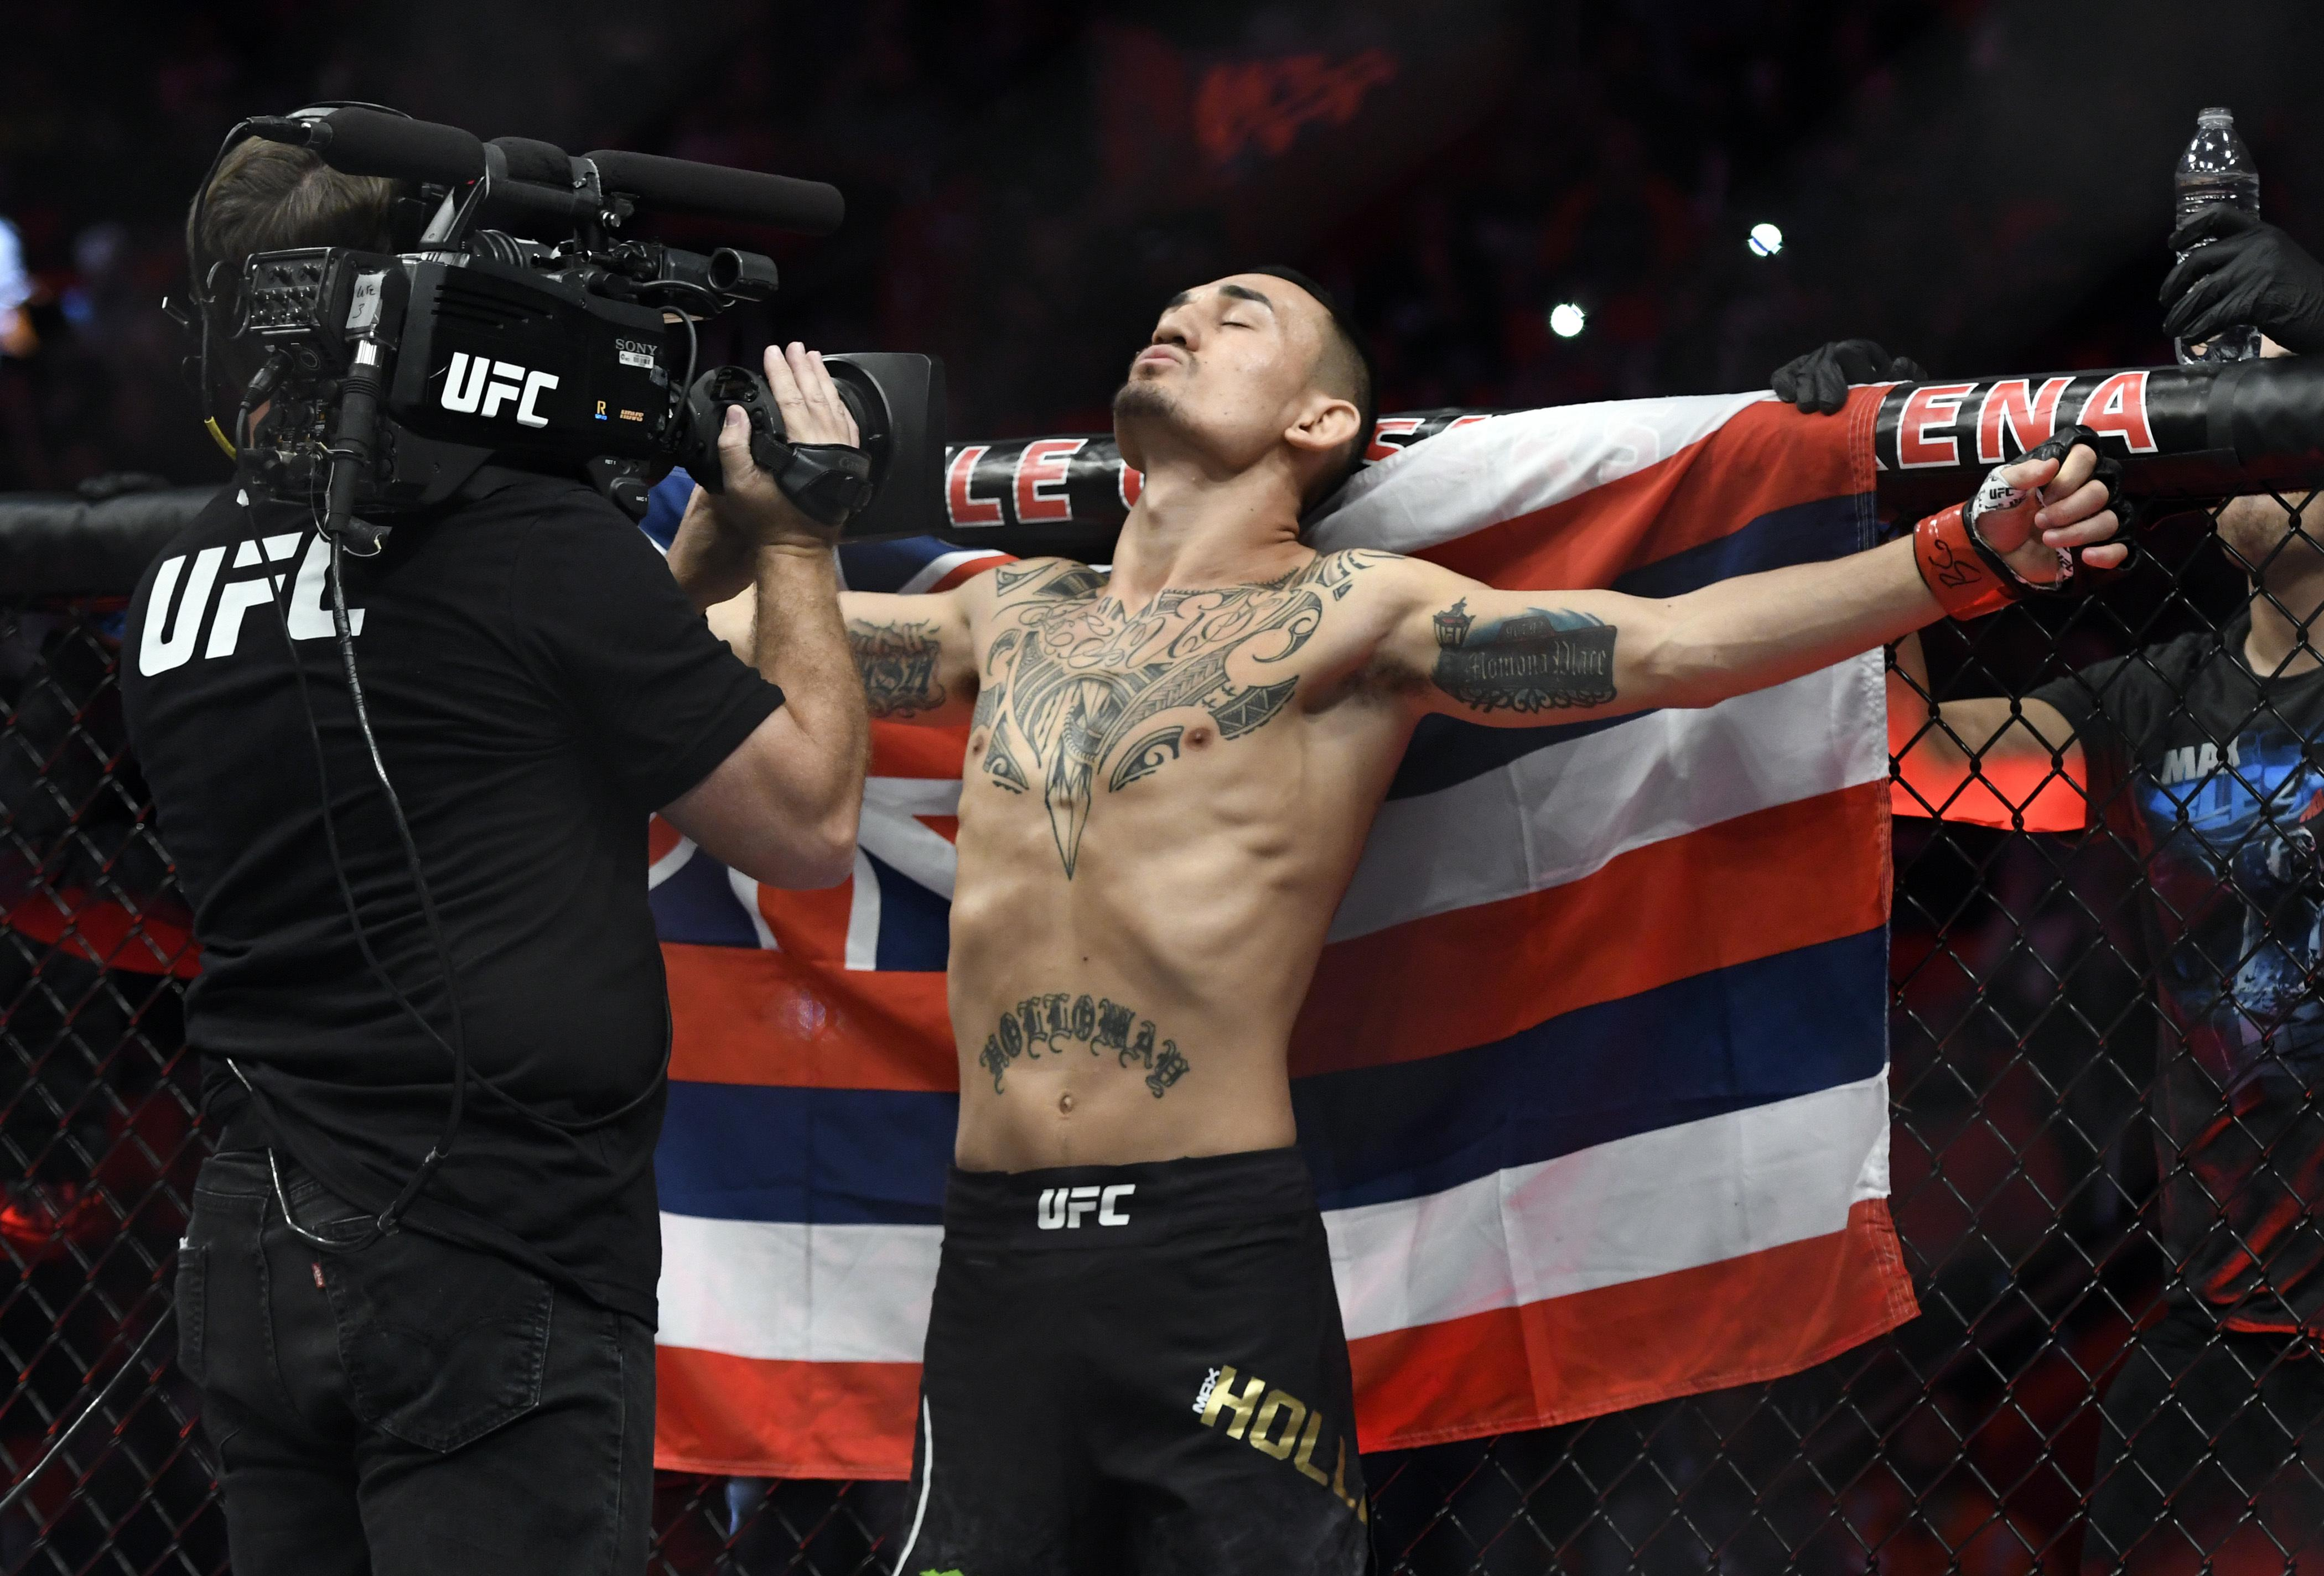 Old foe Max Holloway will get the chance to become lightweight champ this weekend